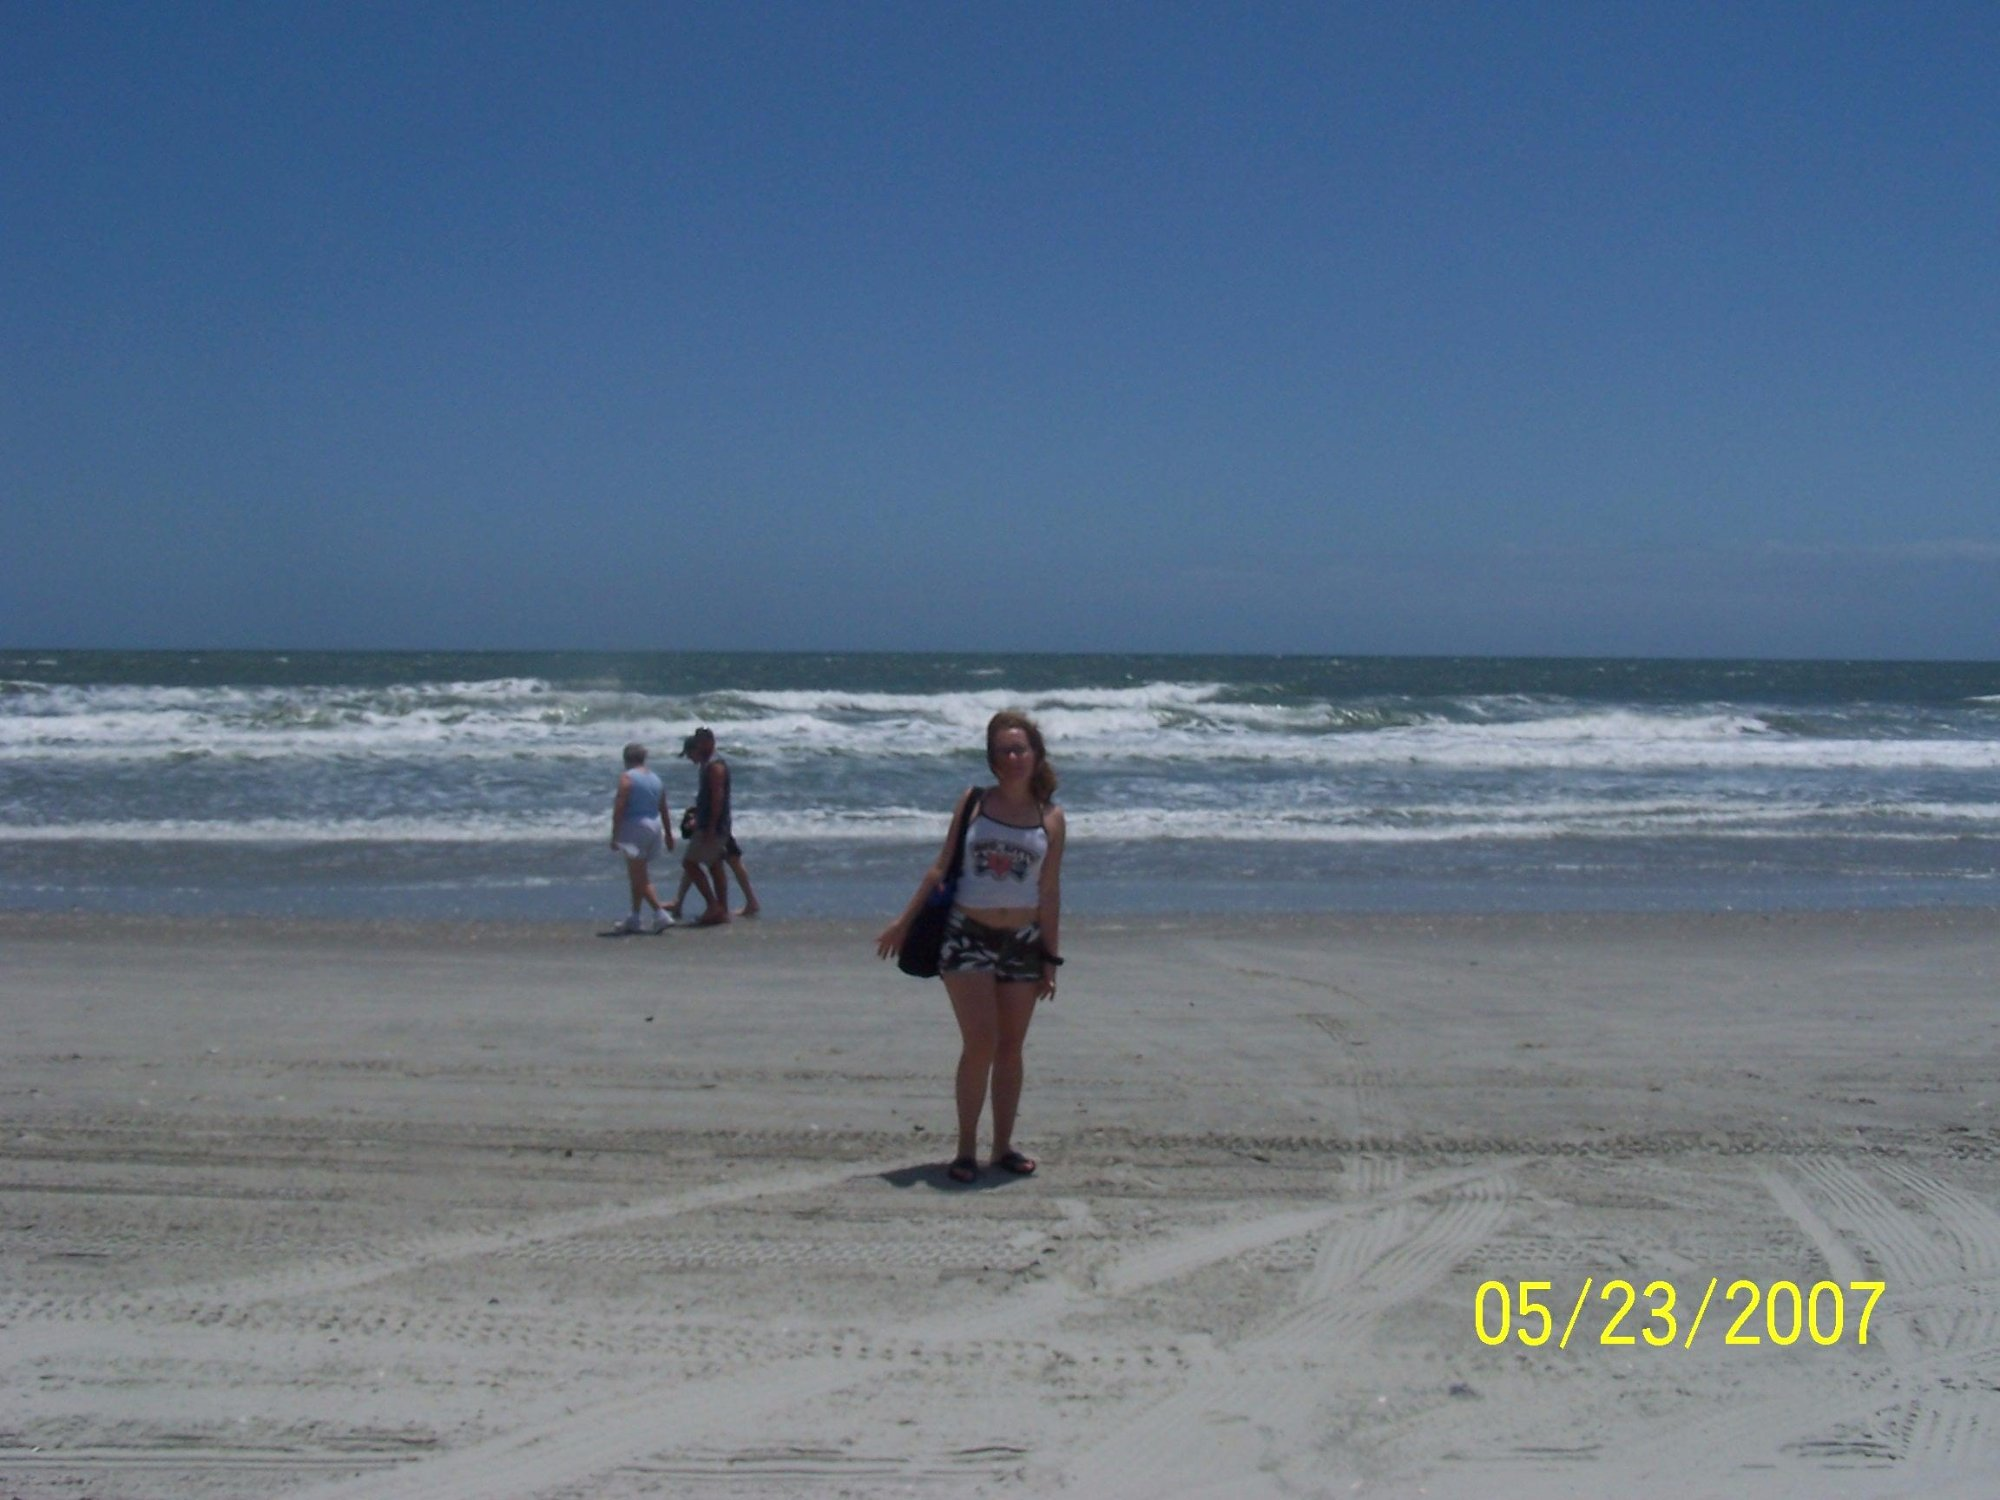 It was too windy that day and I didn't get to swim but we had fun gathering shells